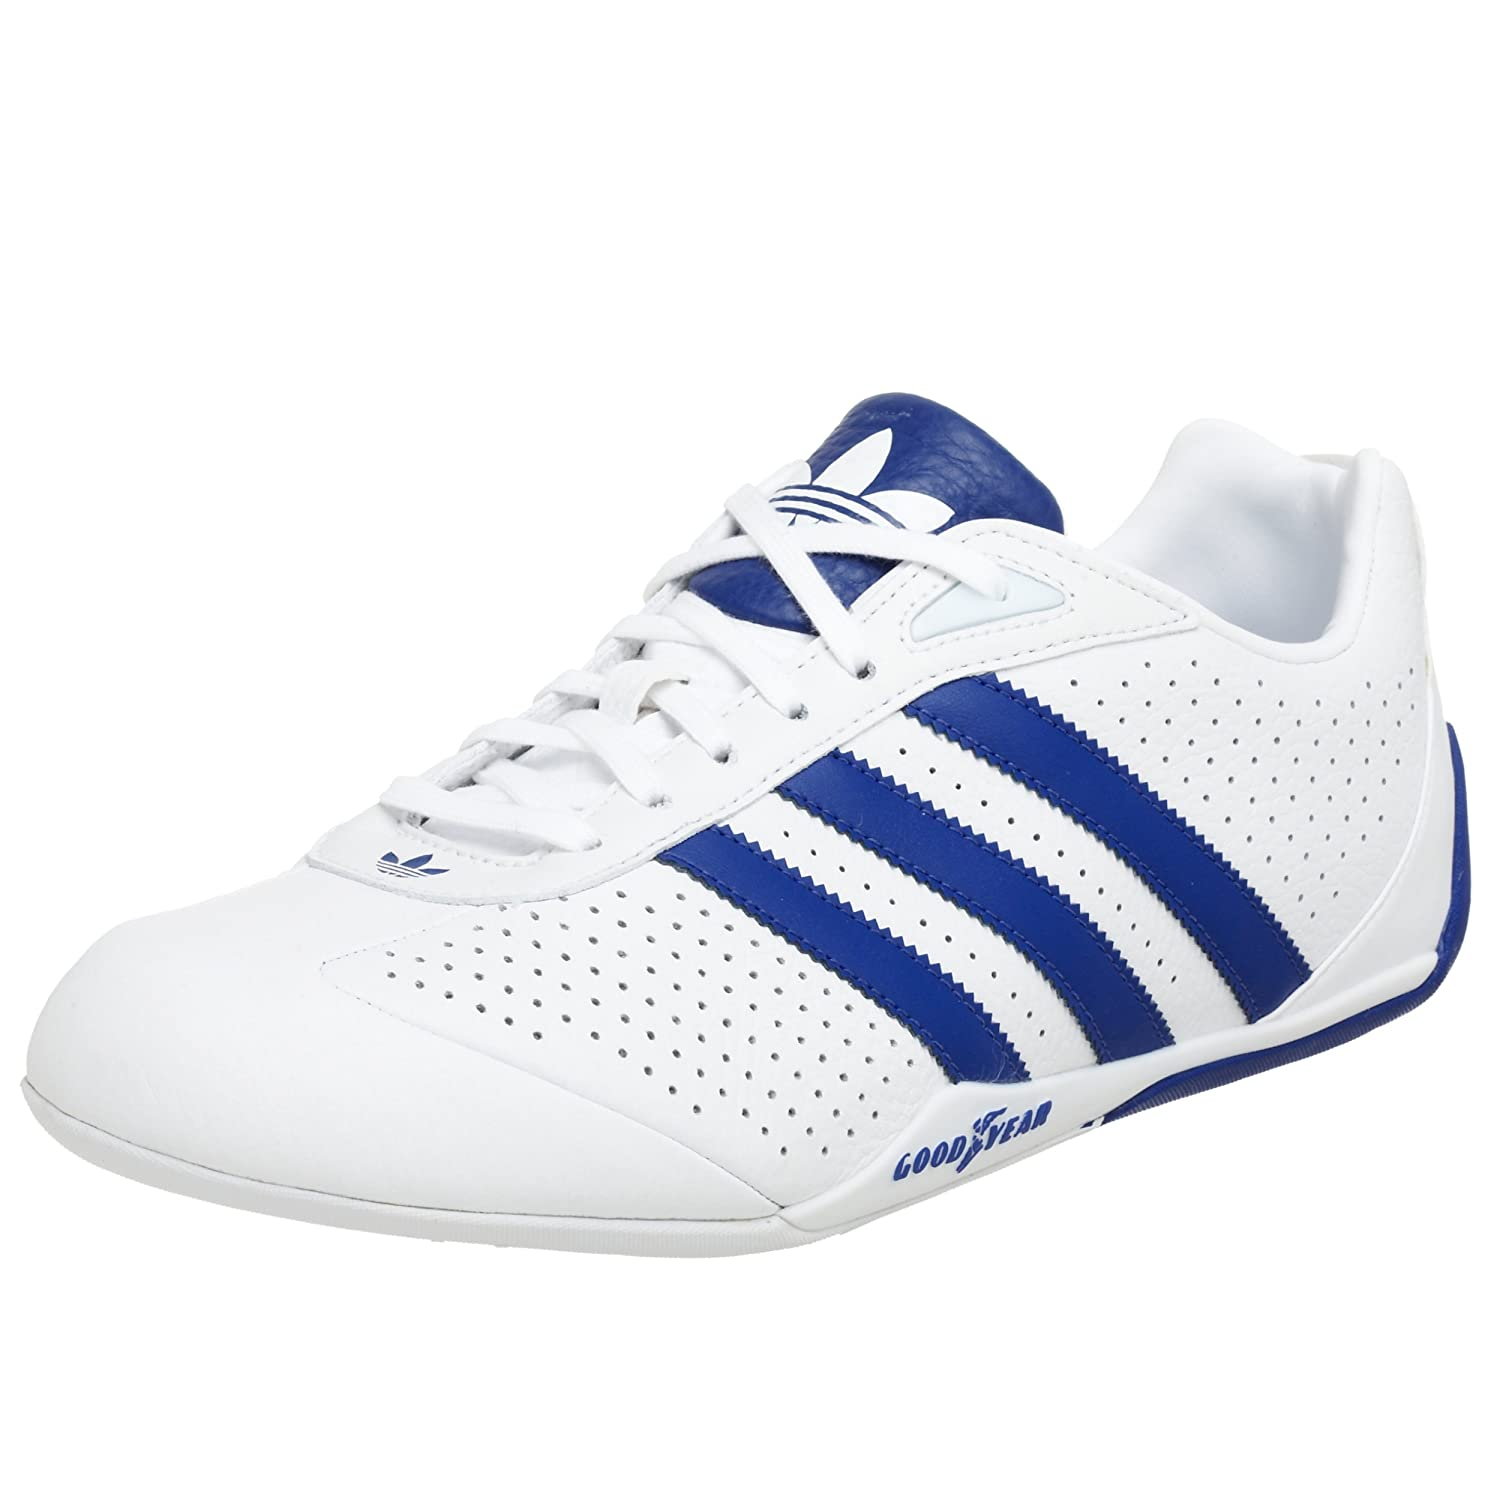 6cdddde606a777 adidas Goodyear  Amazon.co.uk  Shoes   Bags